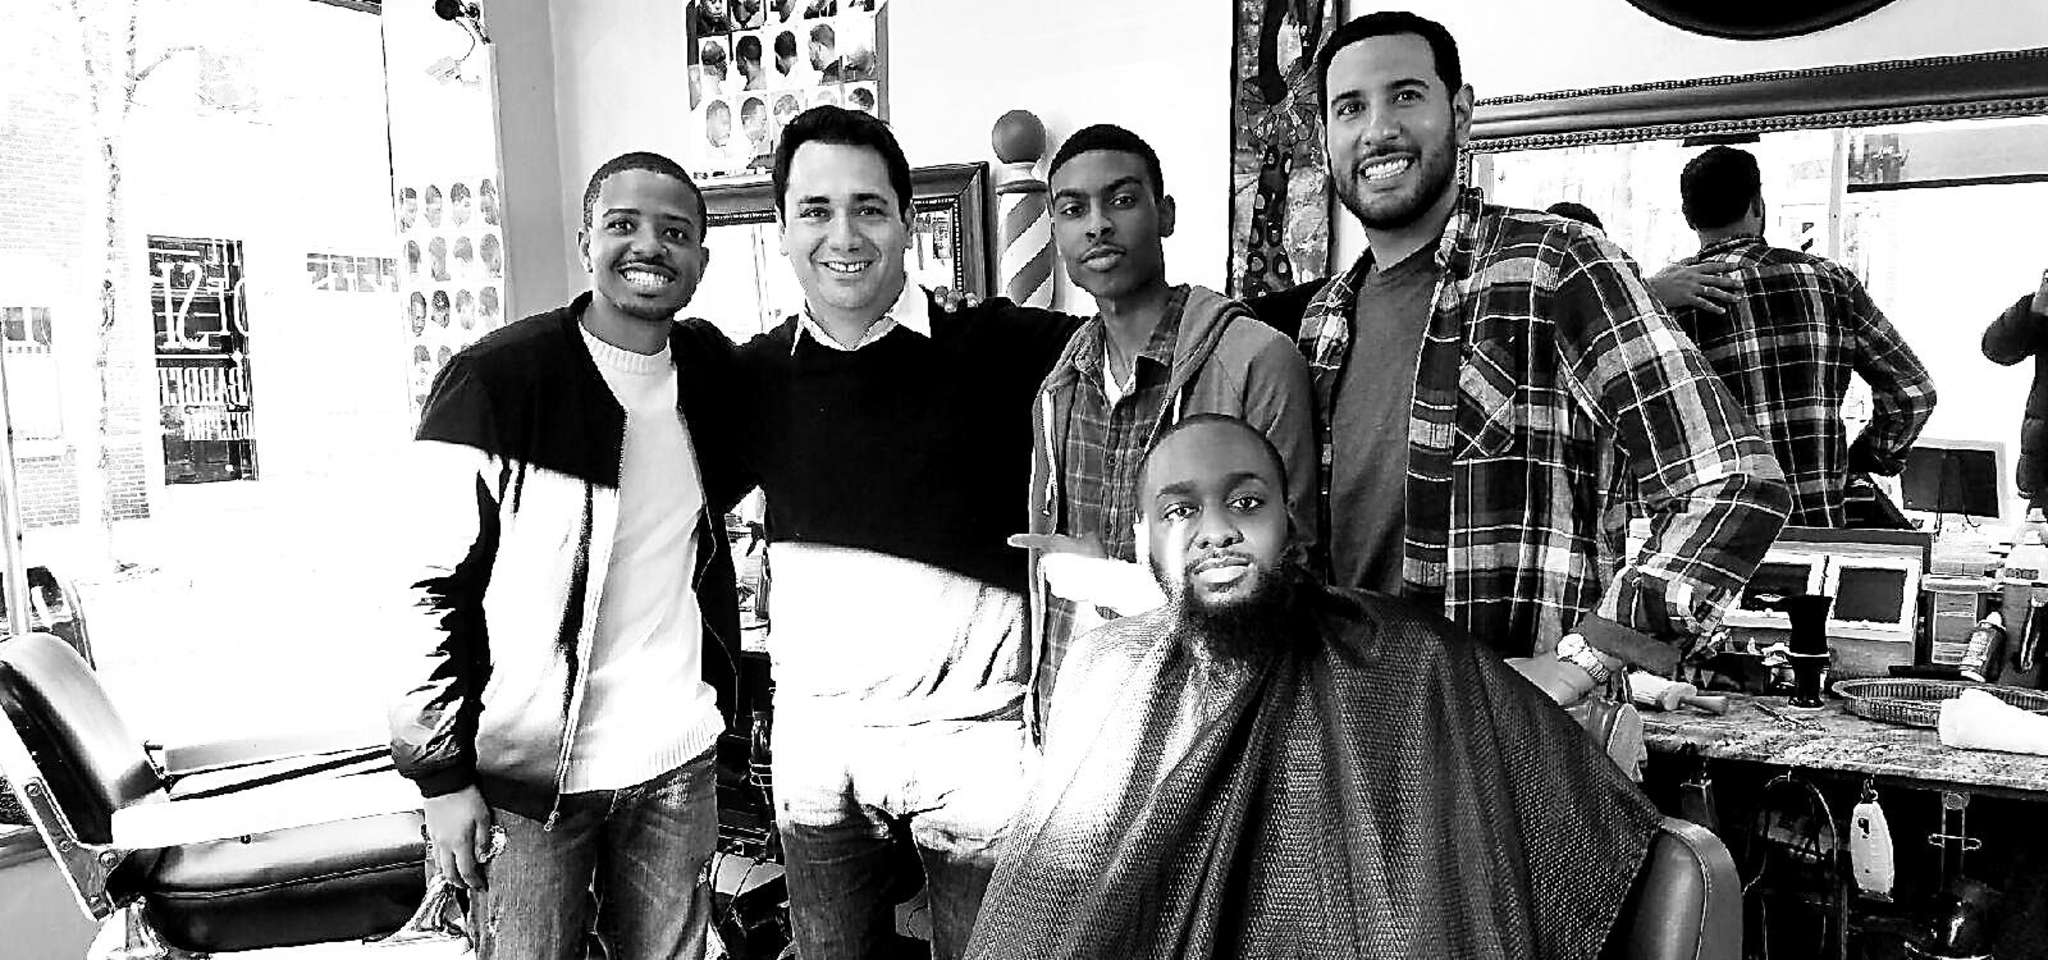 Diego Rivera (second from left) with actors from the McDonald´s commercial that was filmed at Rivera´s barbershop King of Shave on Pine Street.